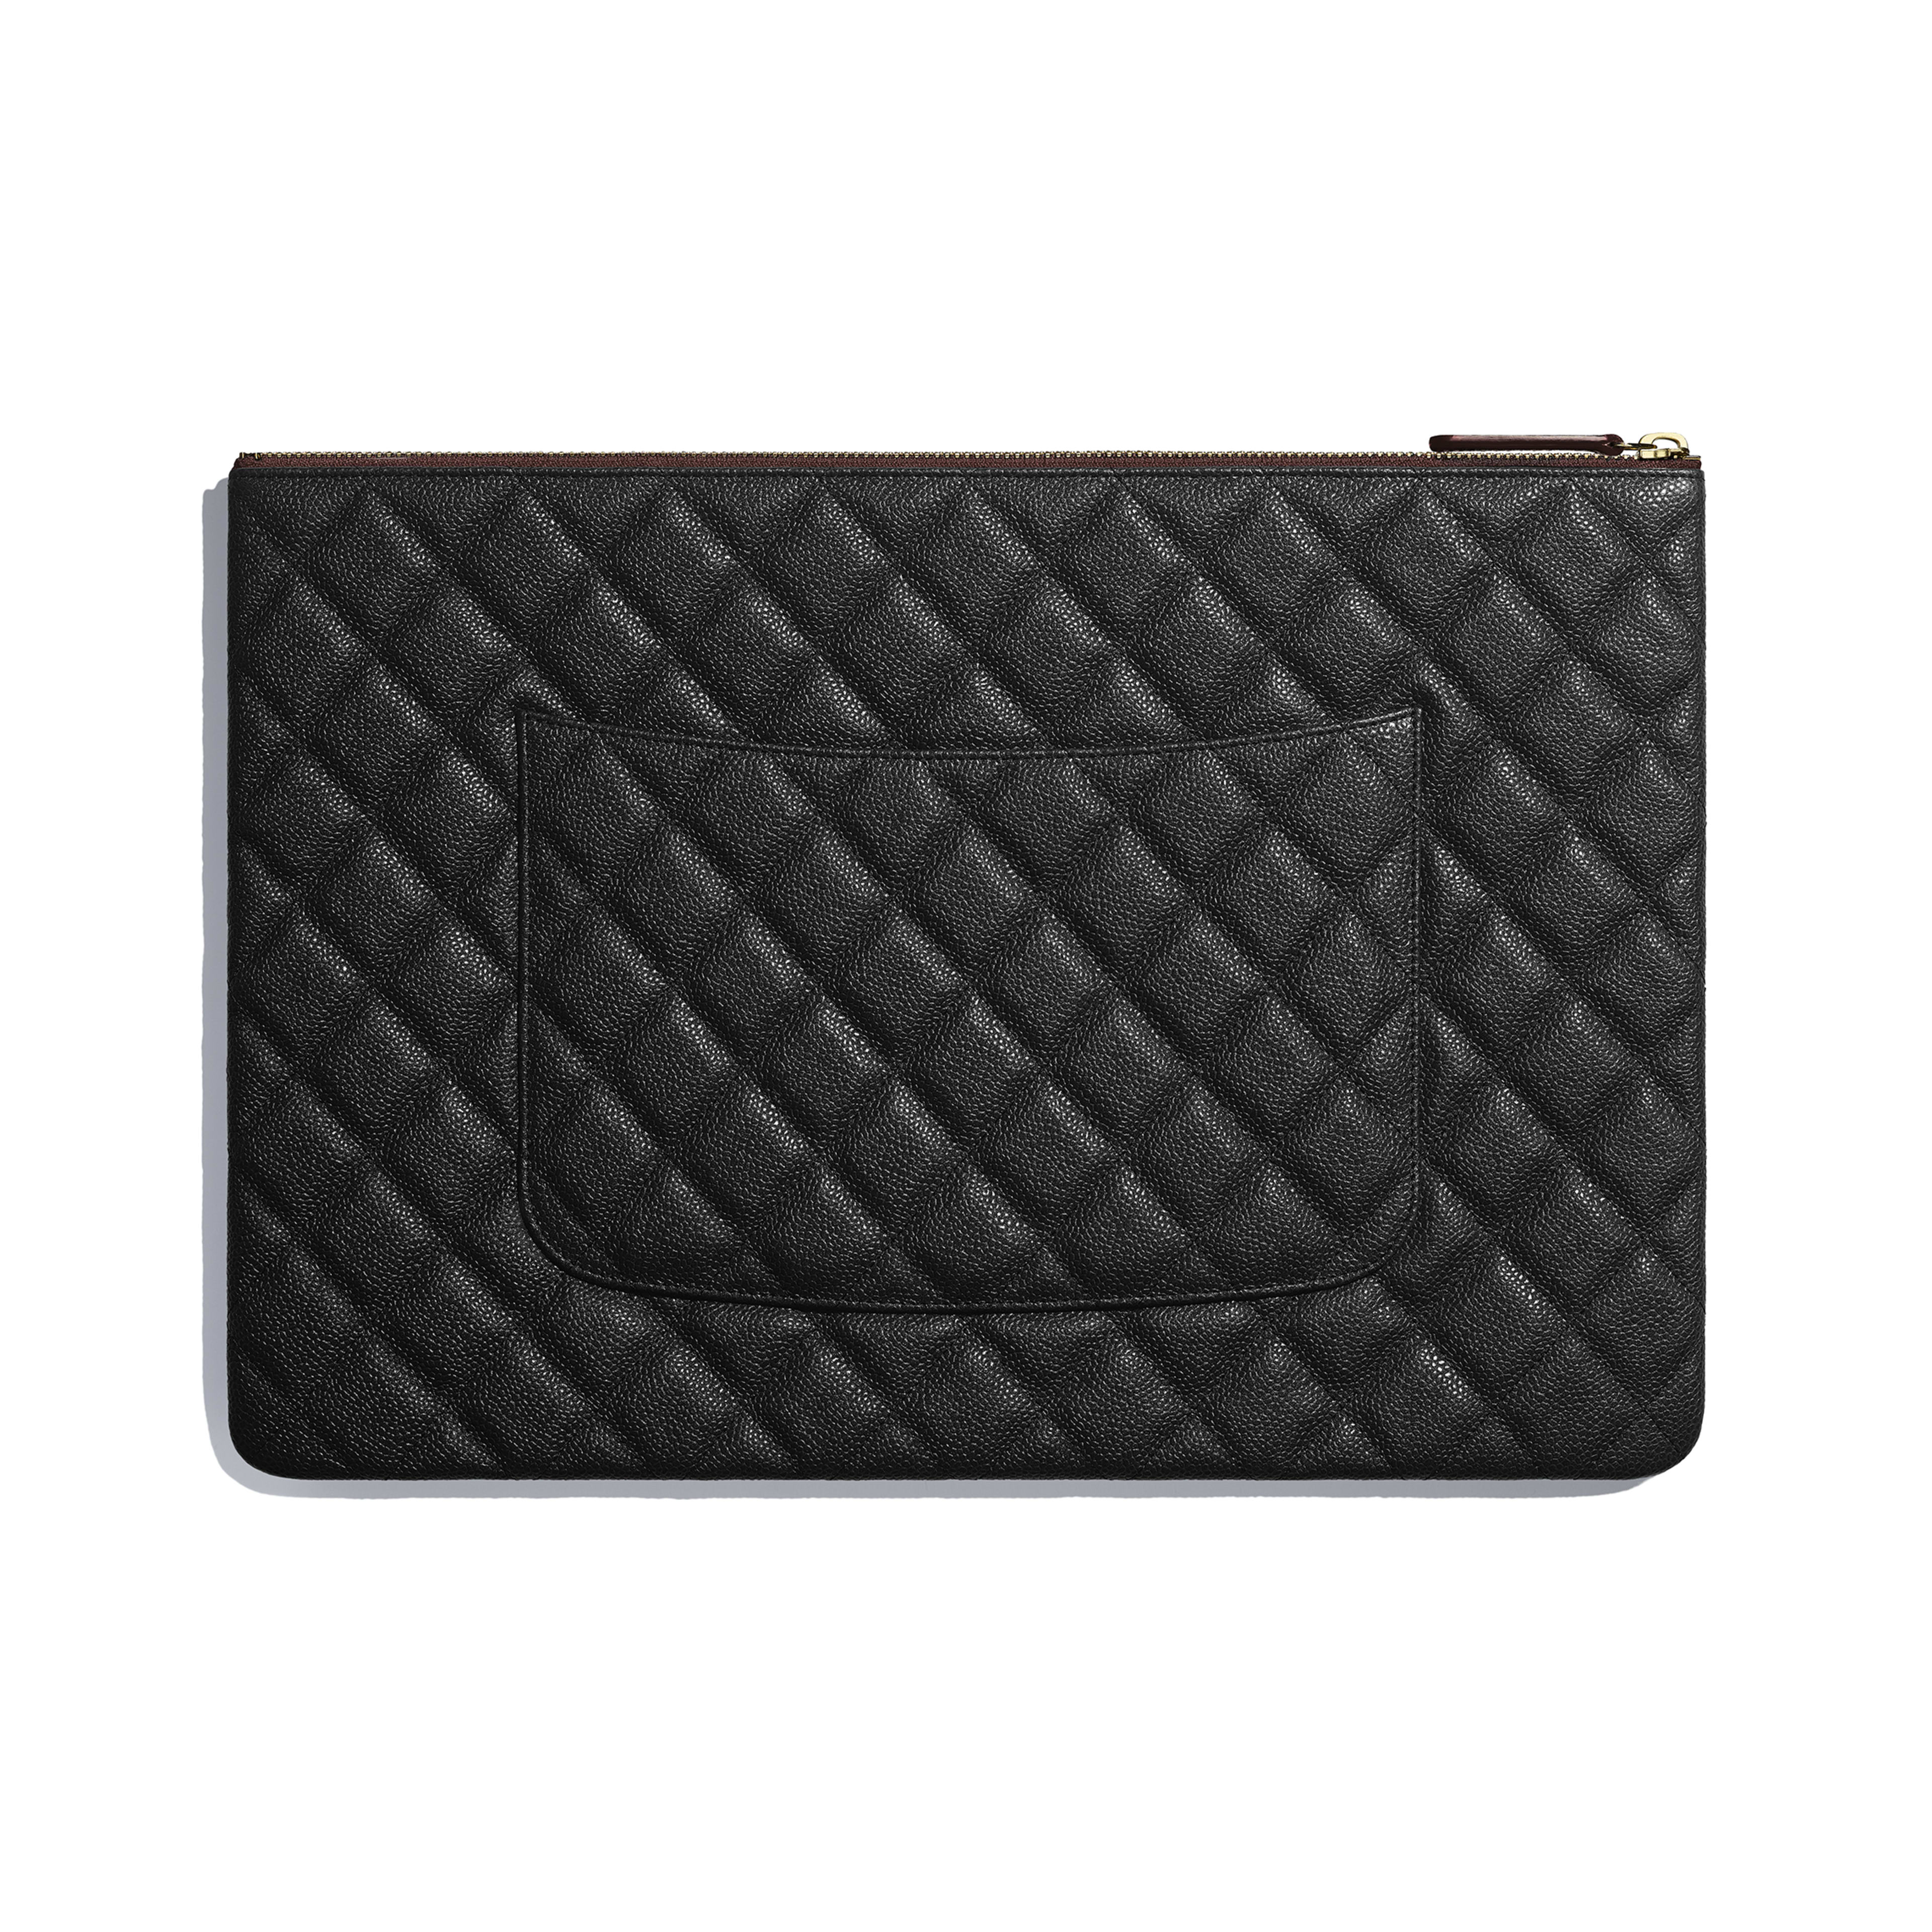 Classic Large Pouch - Black - Grained Calfskin & Gold-Tone Metal - Alternative view - see full sized version